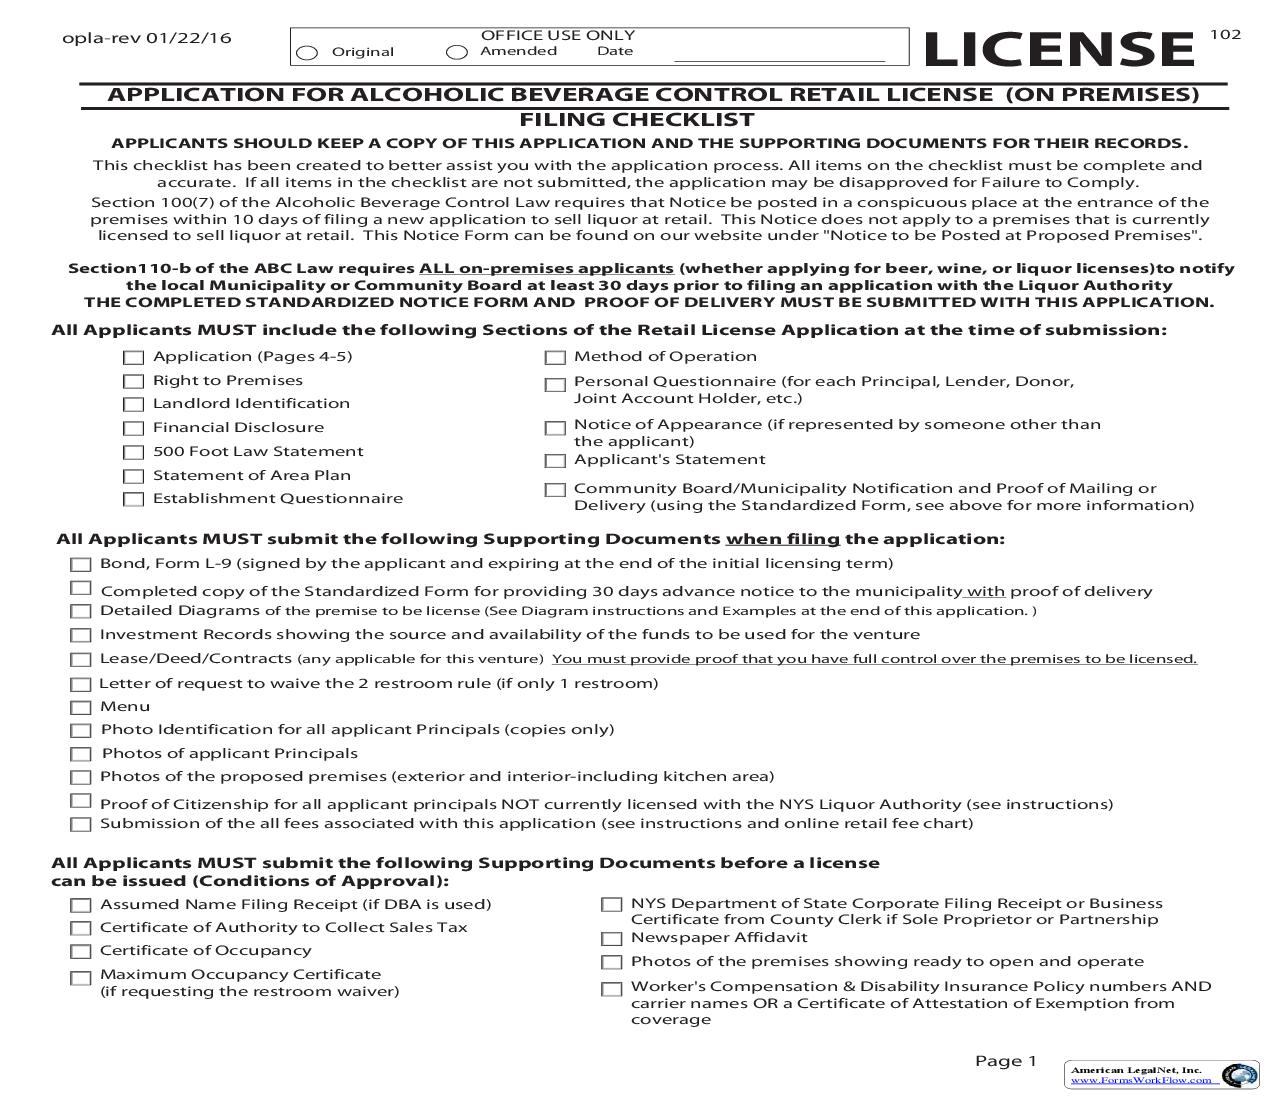 Application For Alcoholic Beverage Control Retail License (On Premises) |  | New York